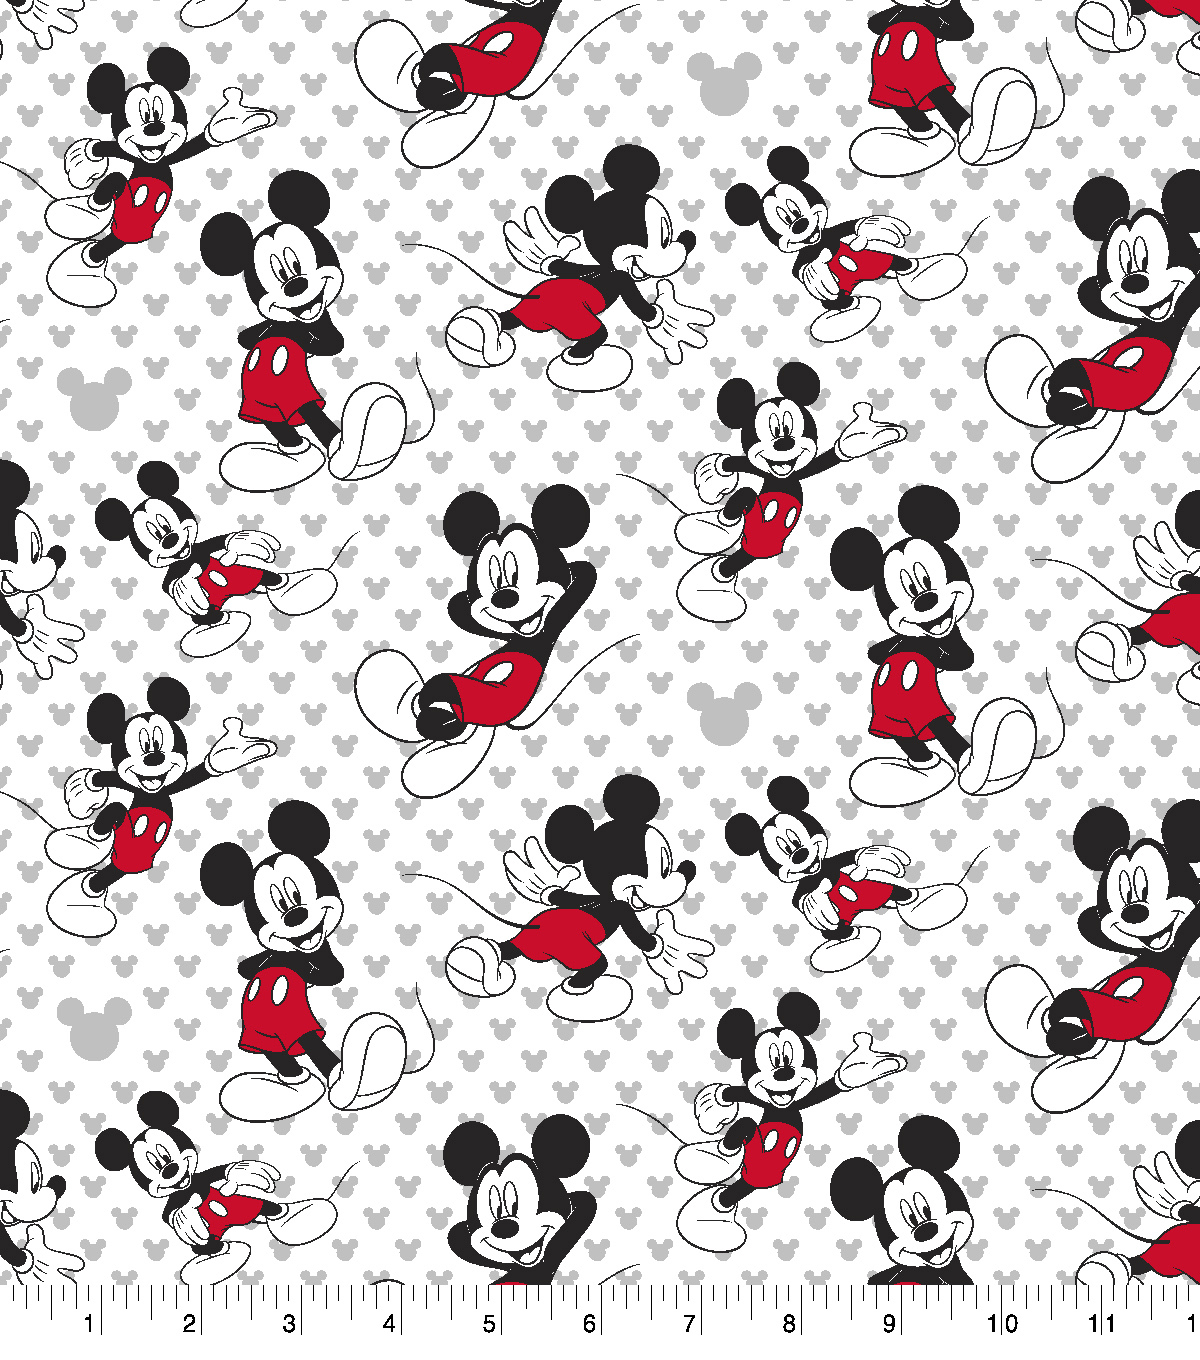 Disney Mickey Disney Mickey Mouse Cotton Fabric Totally Mickey Toss